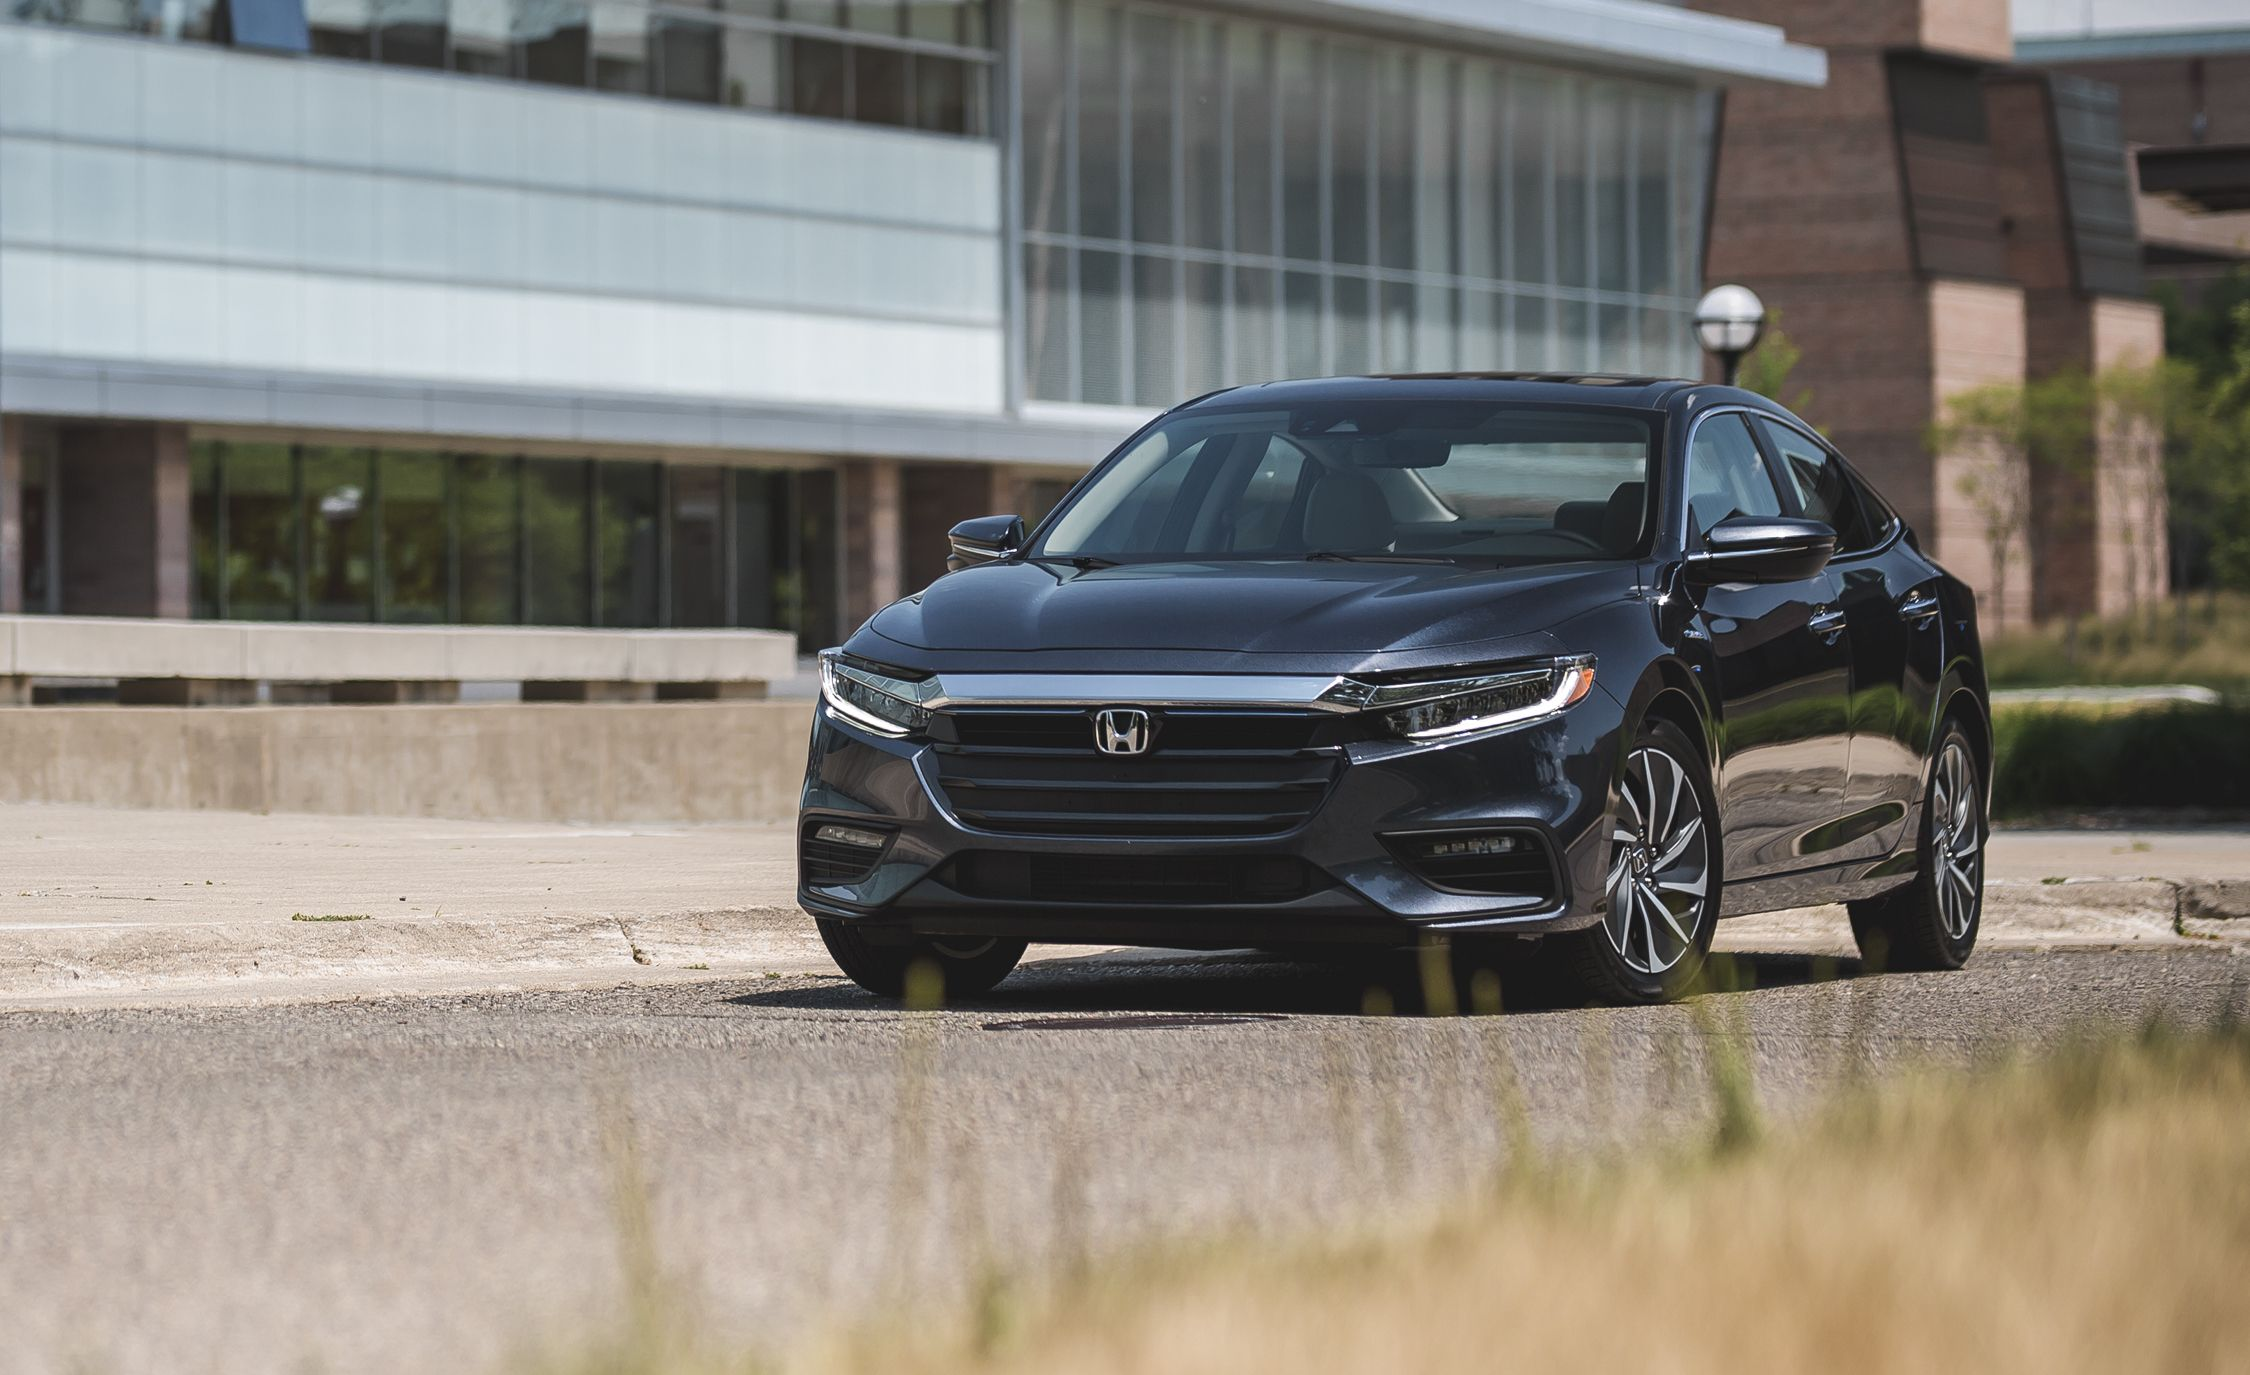 Delightful The 2019 Honda Insight Is Too Sophisticated To Shout About Being A Hybrid